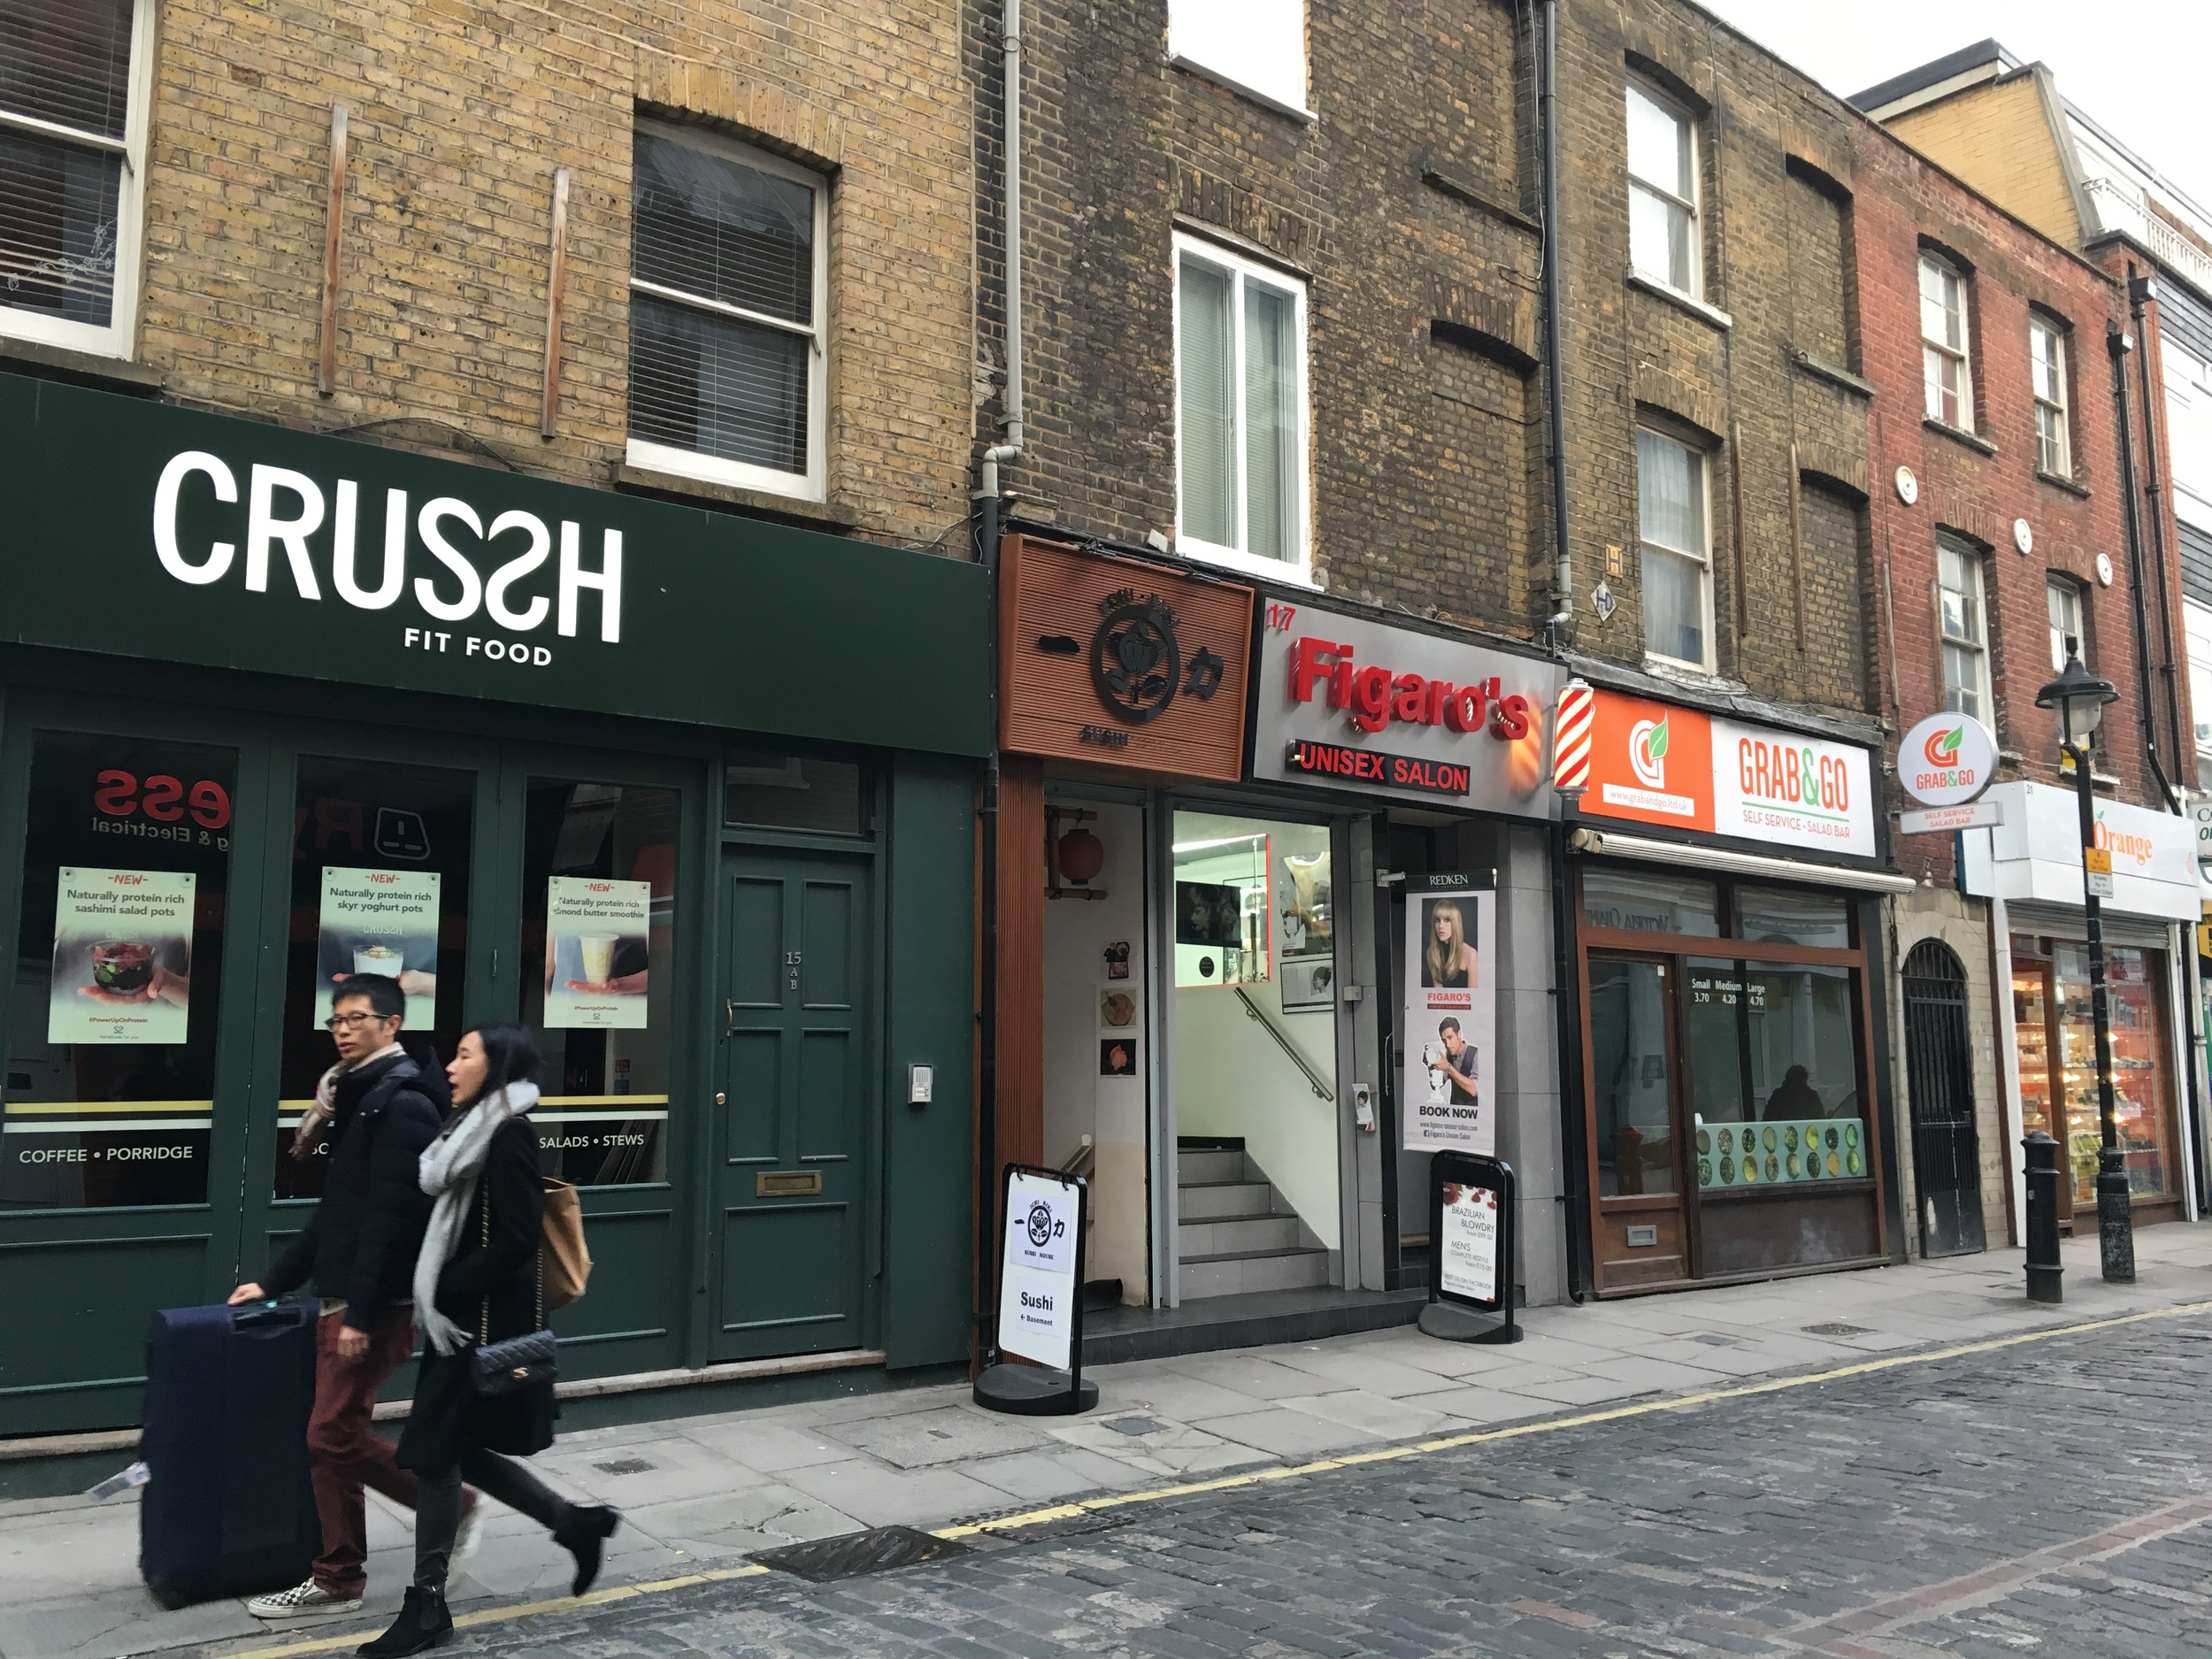 Ichi-Riki is sandwiched between a hair salon and a health food cafe on a cobblestone street in Victoria. (Image: Eileen Hsieh)